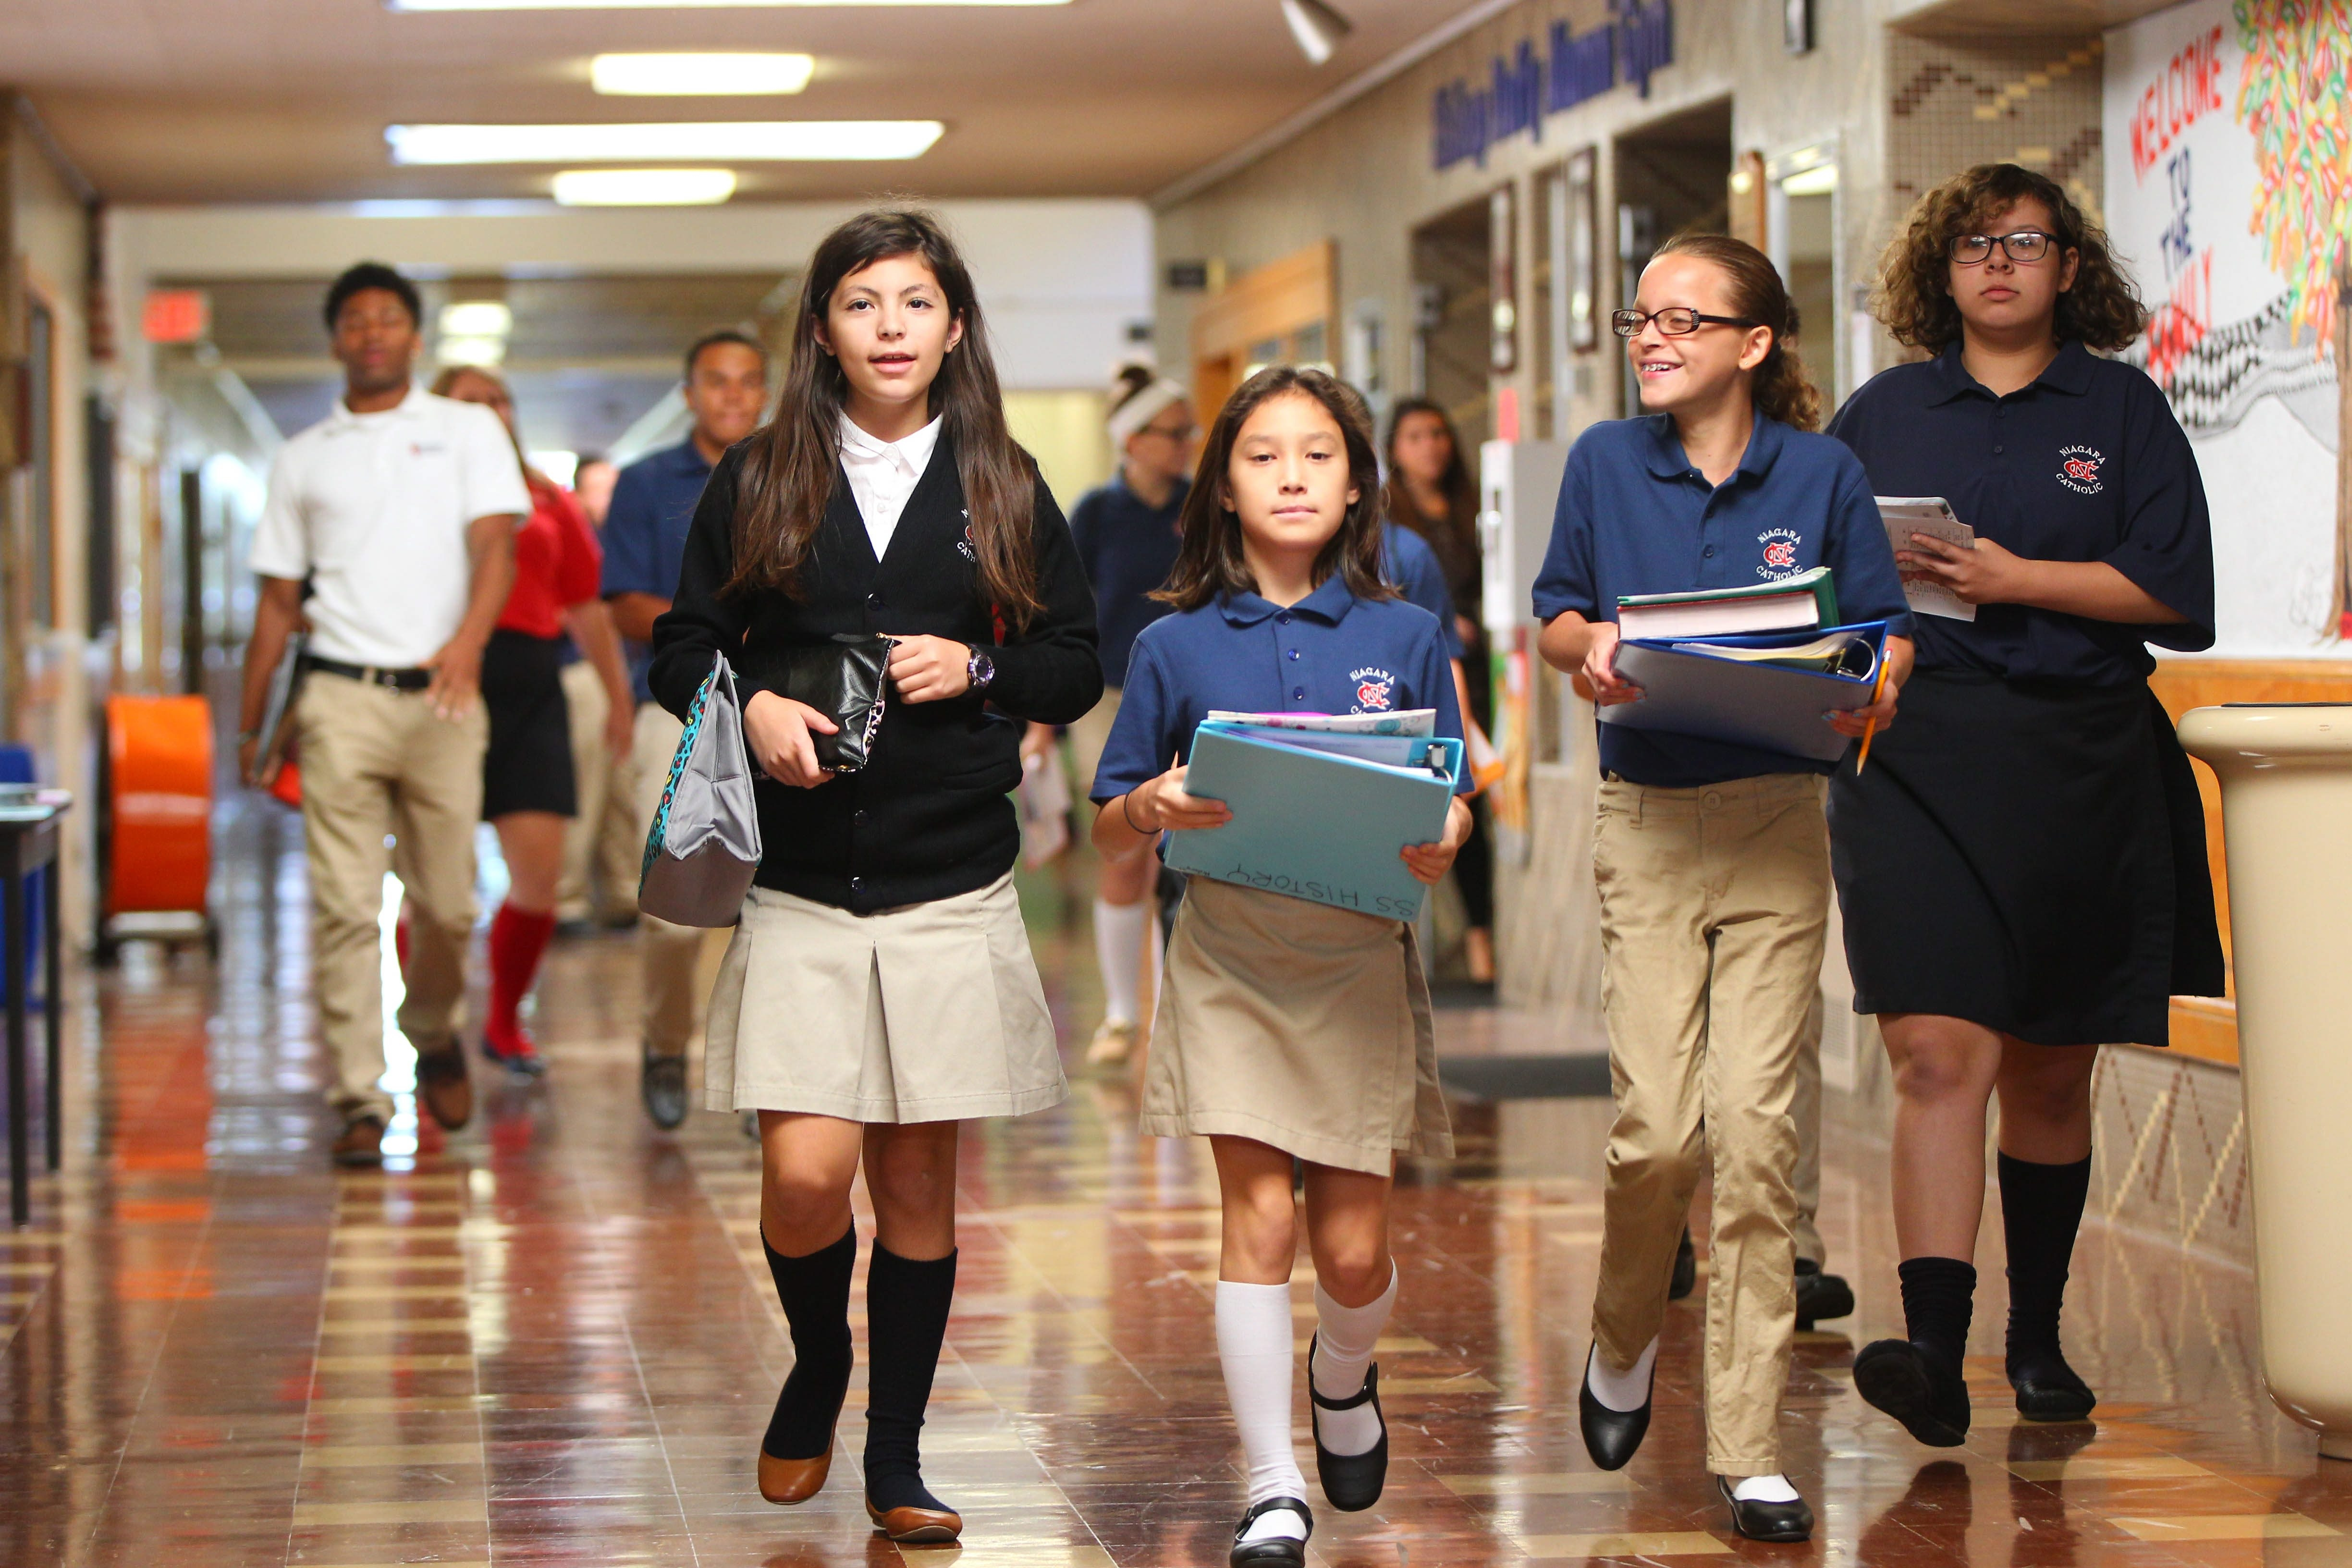 Students make their way to class at Niagara Catholic. Niagara County's only Catholic junior-senior high school is seeking to expand enrollment from the current 206 to 250 or 300 in two years.